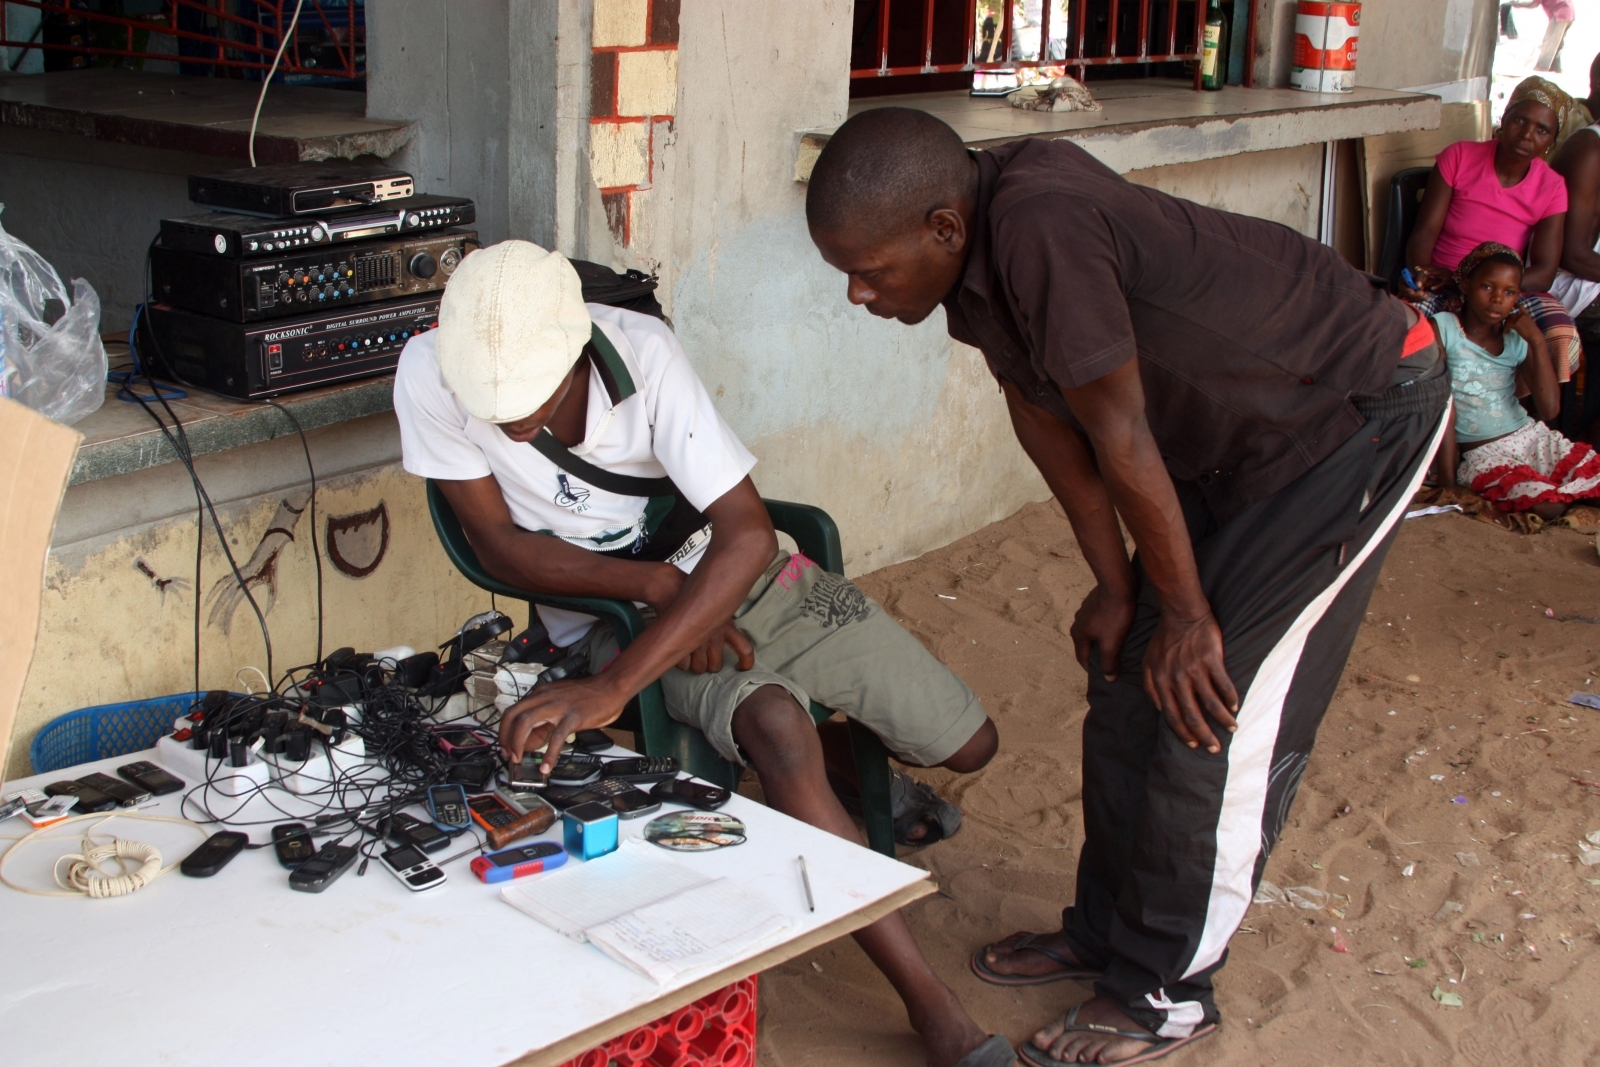 A street vendor sells mobile phones in Mozambique.